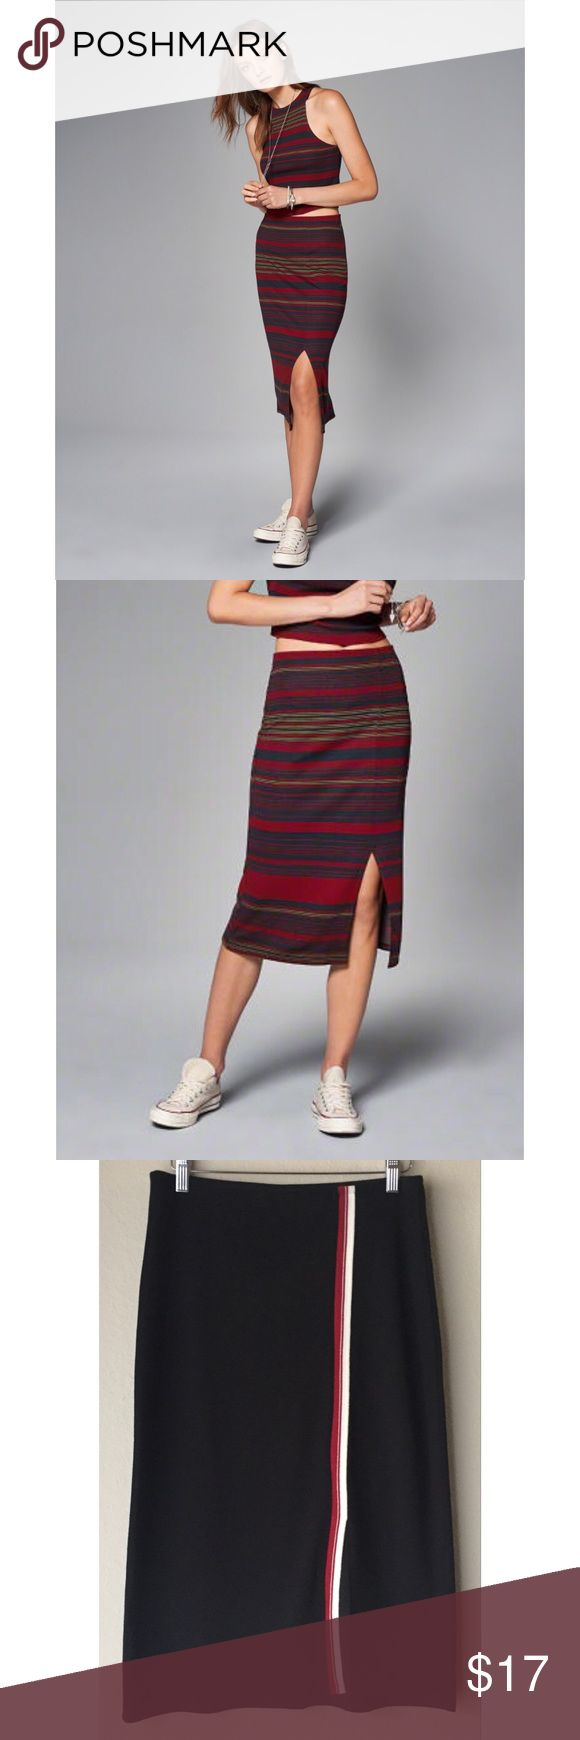 Abercrombie & Fitch Midi Skirt Knit Midi Skirt with slit. Red/white stripe. 86% Viscose, 11% Polyester, 3% Elastane. First 2 pictures are the same Skirt in a different color. New. Abercrombie & Fitch Skirts Midi